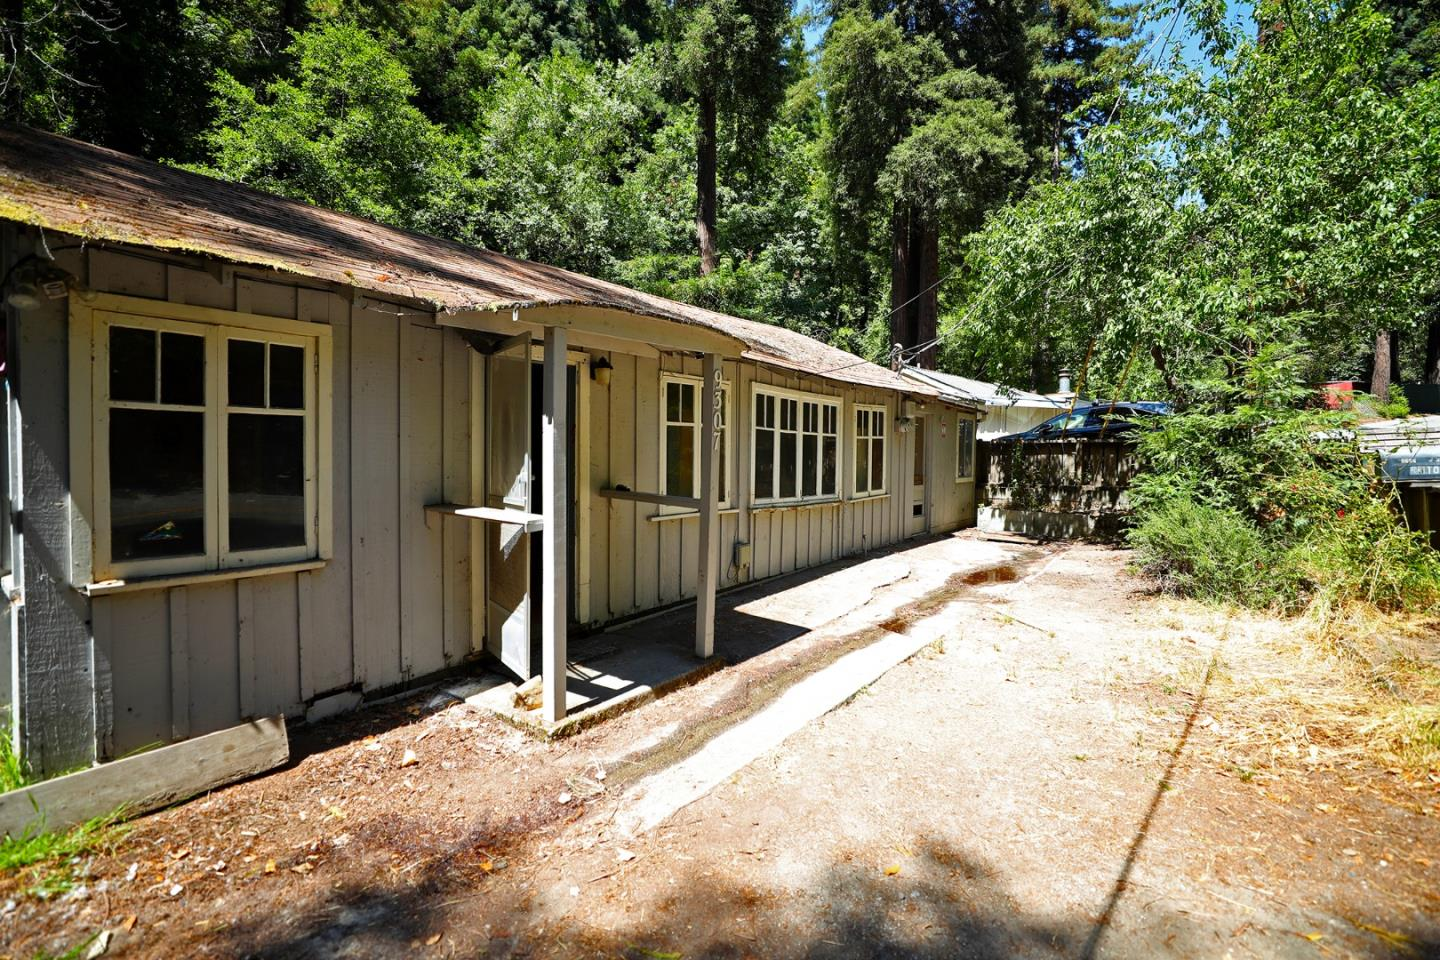 Welcome to this cute cottage located in the Santa Cruz Mountains! This 3 bedroom, 1 bathroom home needs some remodeling, but can be transformed into the perfect rustic, modern home. This quaint home is near wonderful San Lorenzo schools, fine Felton dining, and hiking trails. Imagine living in the heart of Felton, surrounded by towering Redwoods, and being only 30 minutes from the breathtaking coastline of Santa Cruz! You do not want to miss out on this affordable opportunity of creating your perfect home!